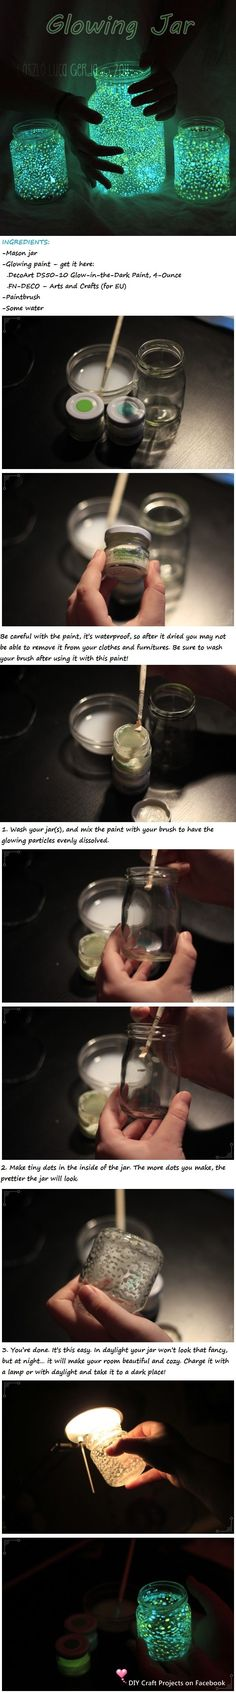 DIY Glowing Jar Pictures, Photos, and Images for Facebook, Tumblr, Pinterest, and Twitter